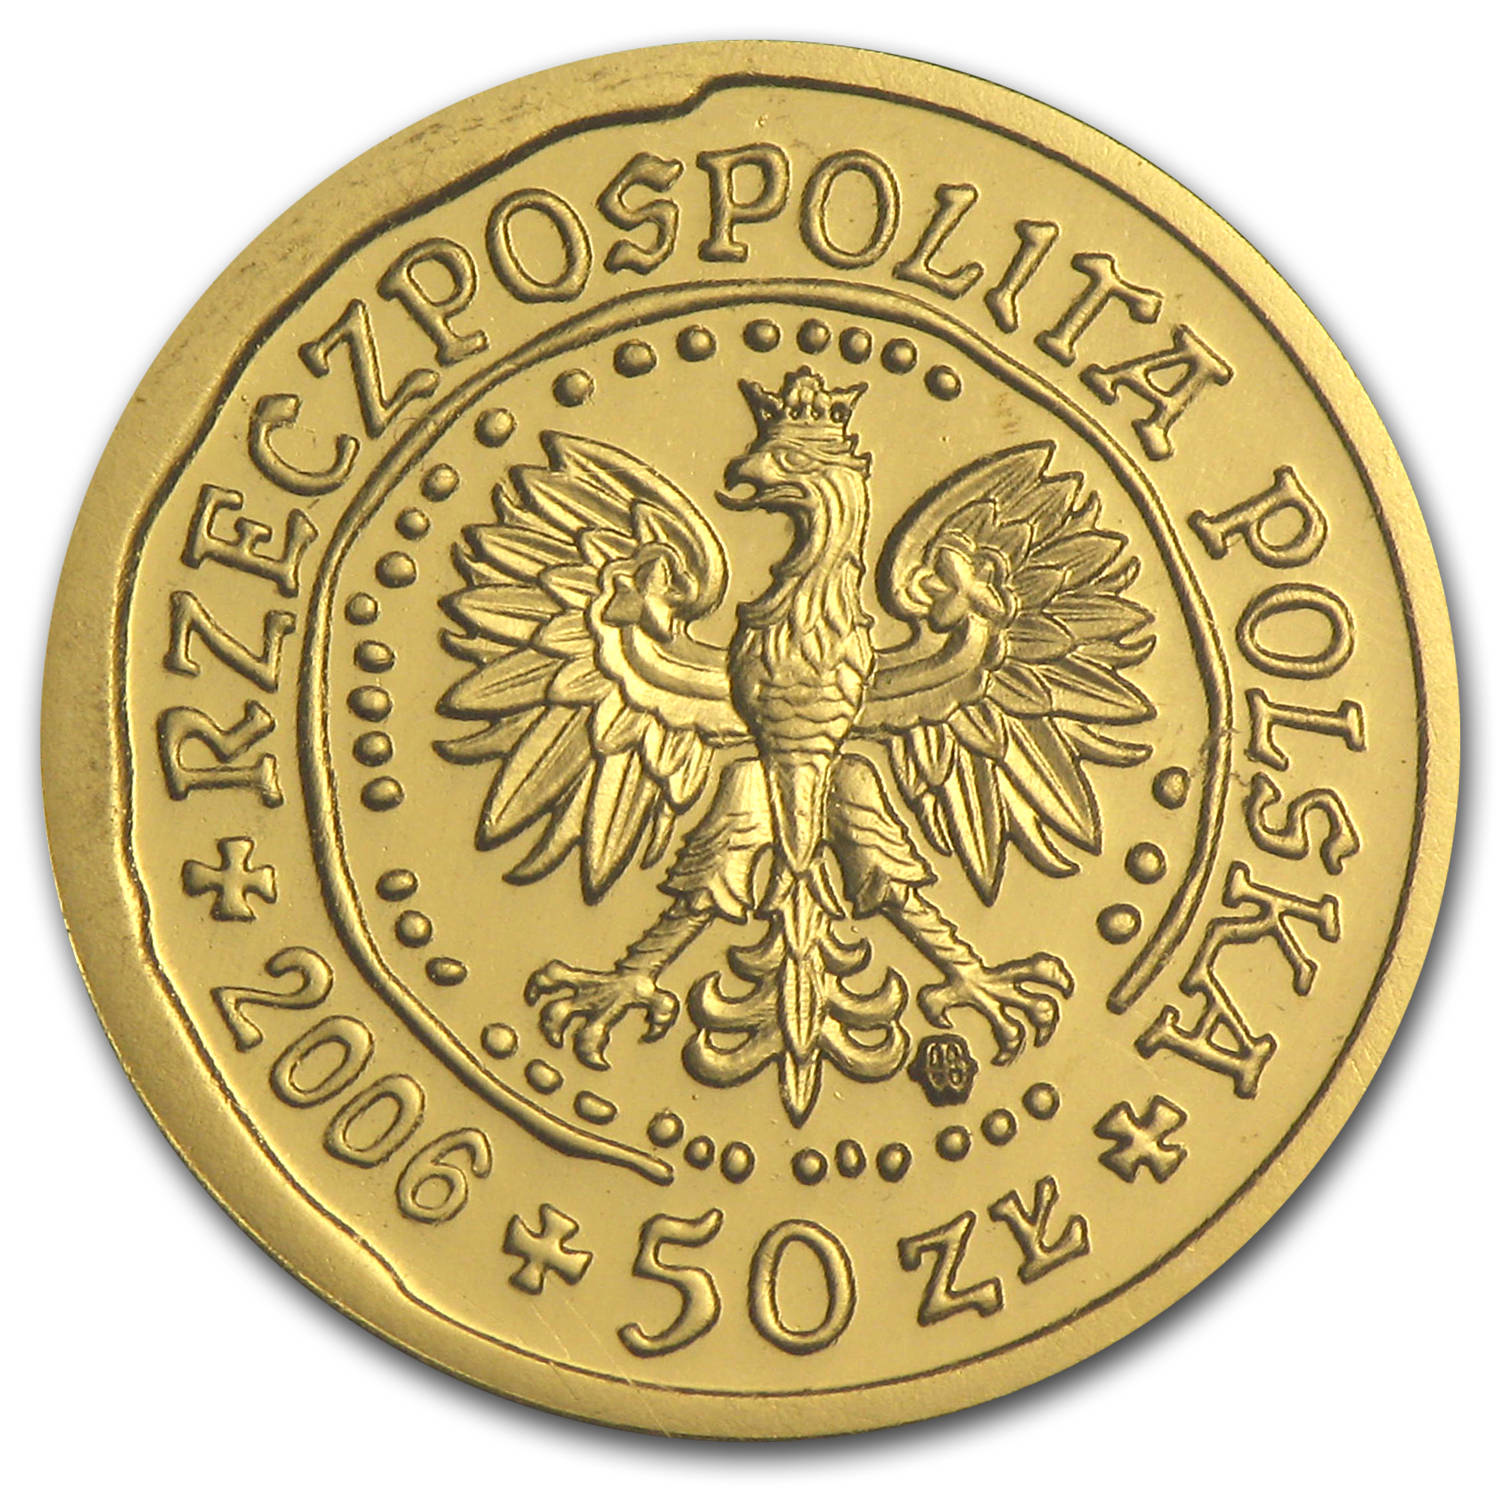 2006 Poland 1/10 oz Gold 50 Zlotych BU